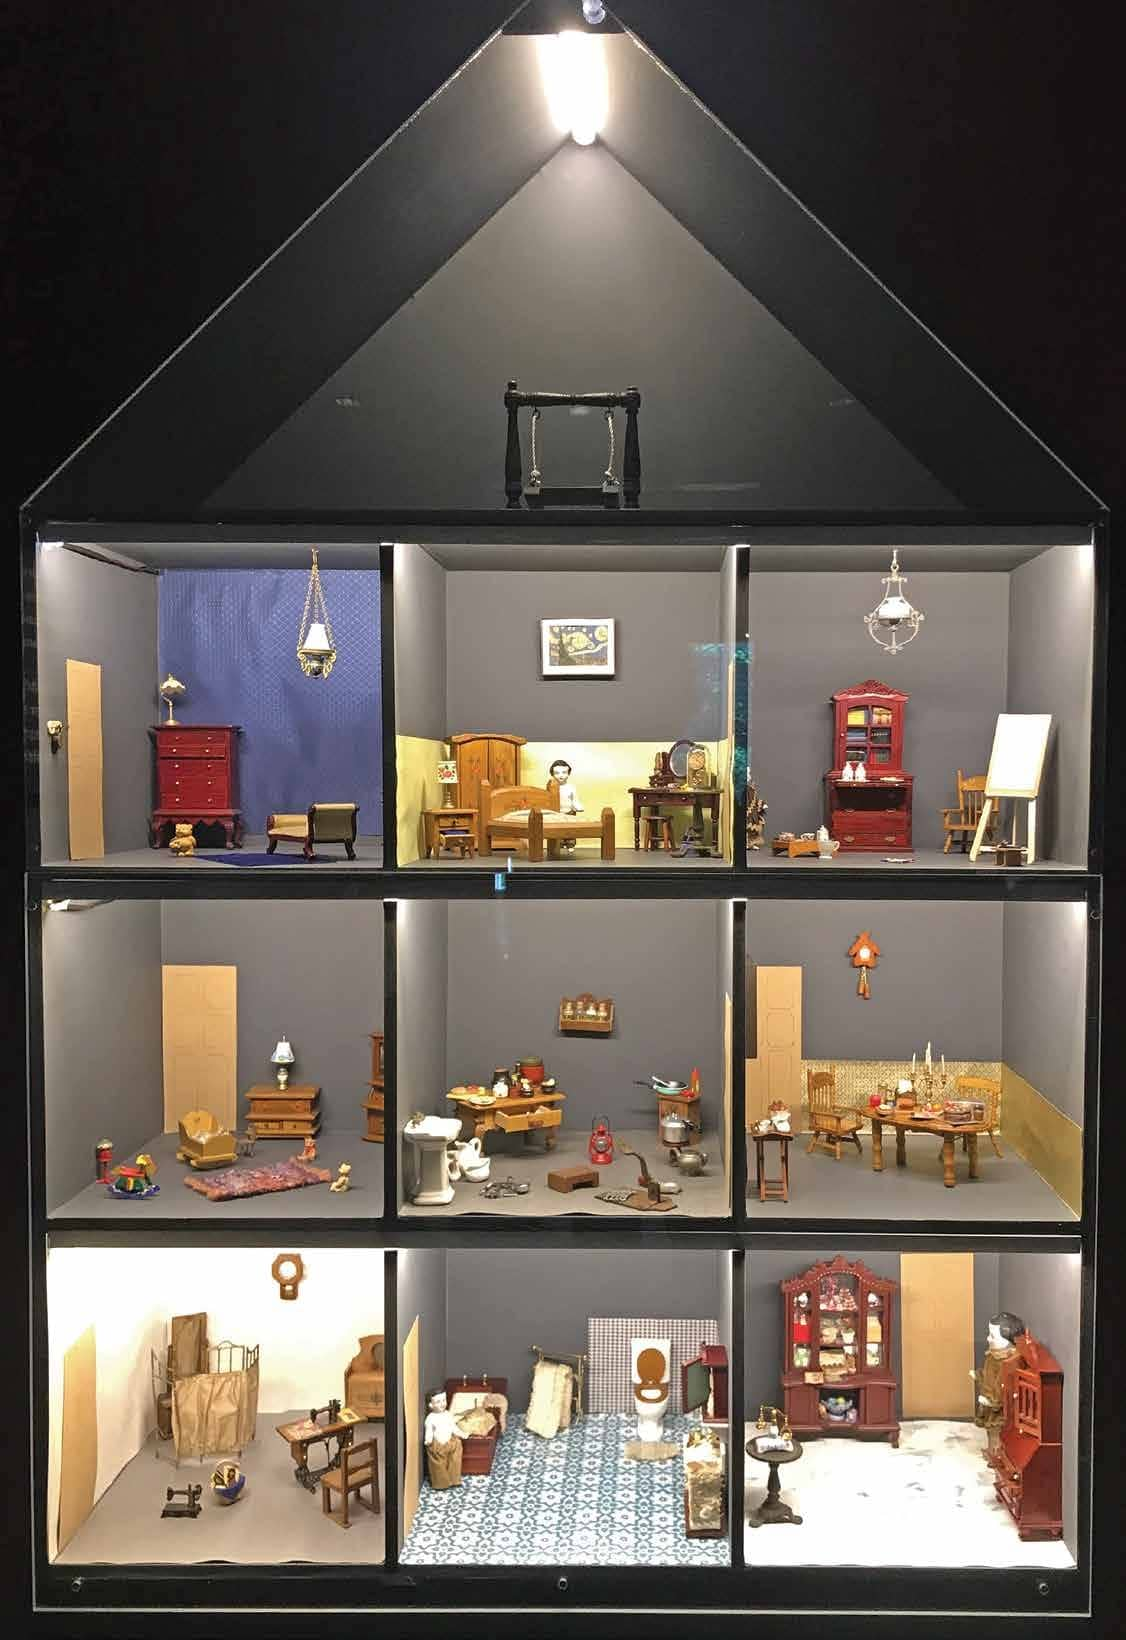 Does size matter? Exploring the aesthetics of miniatures